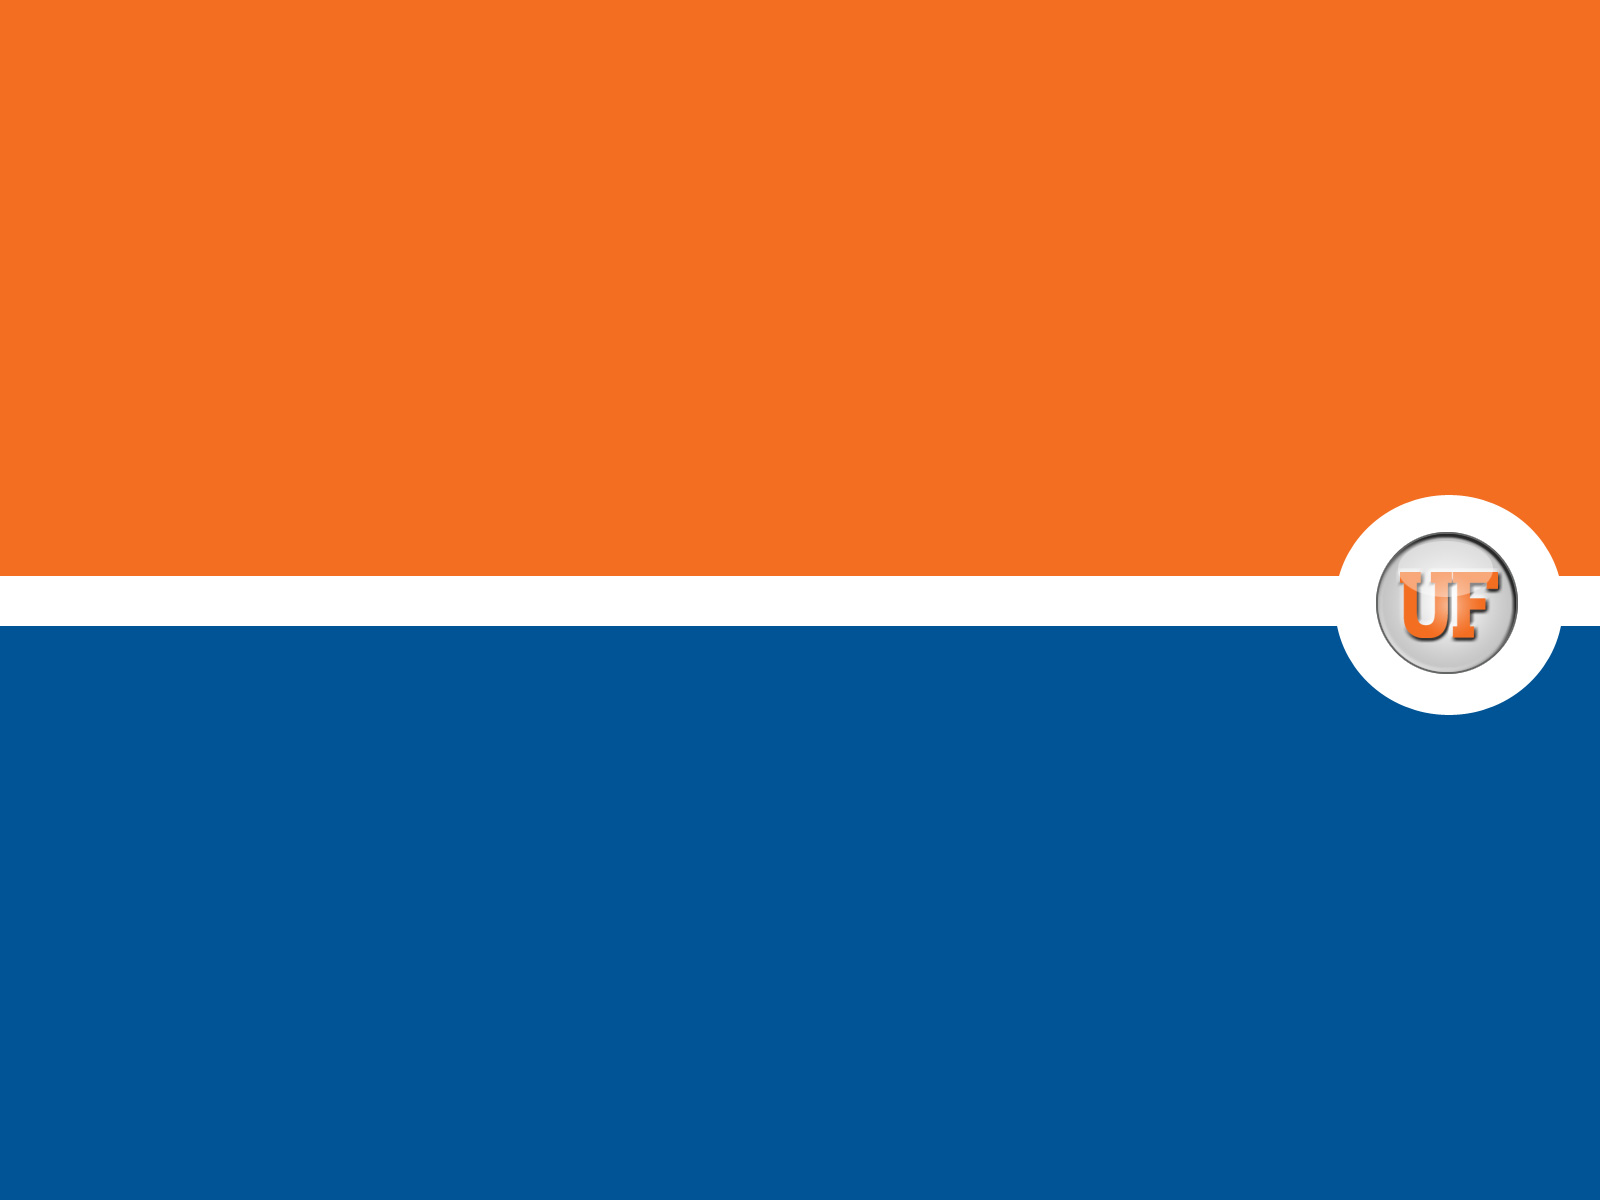 Backgrounds For University Of Florida Background | www ...